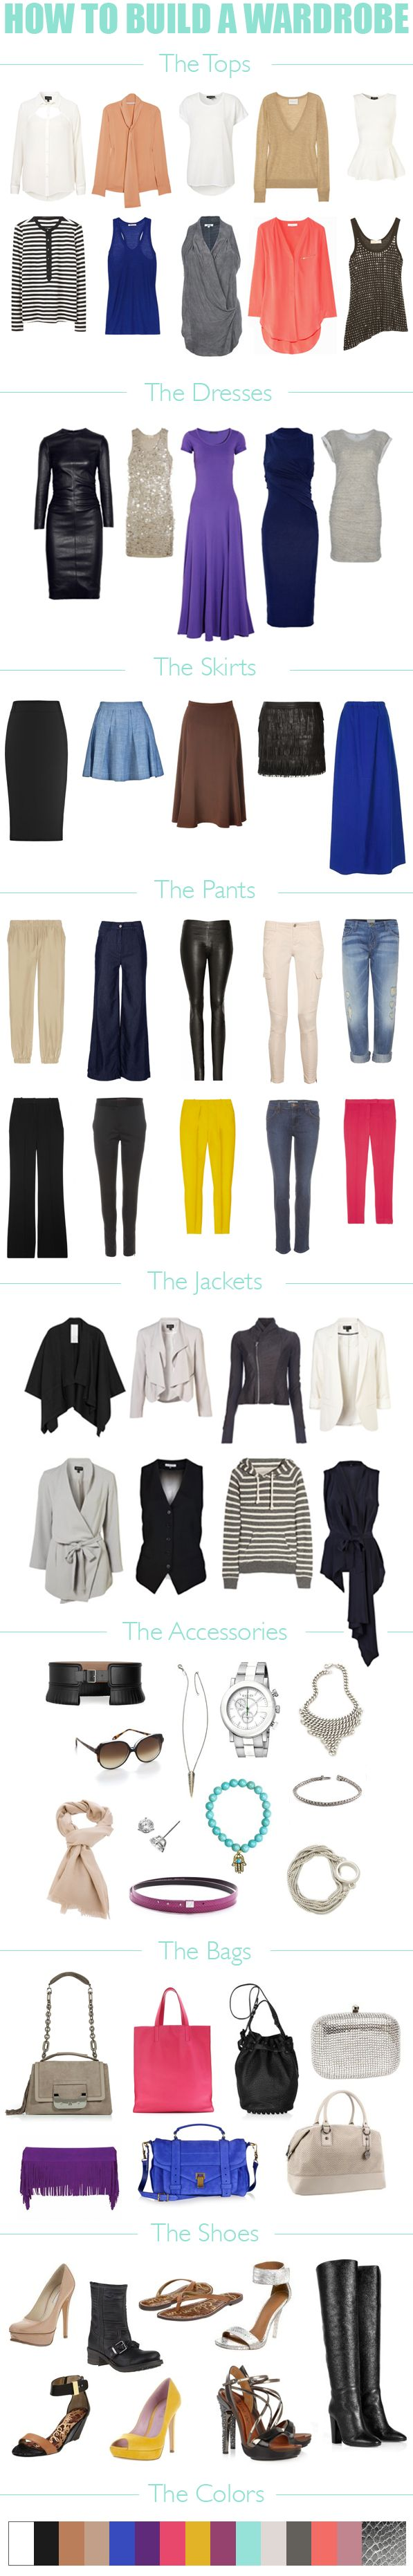 How To Build A Wardrobe - READ it!